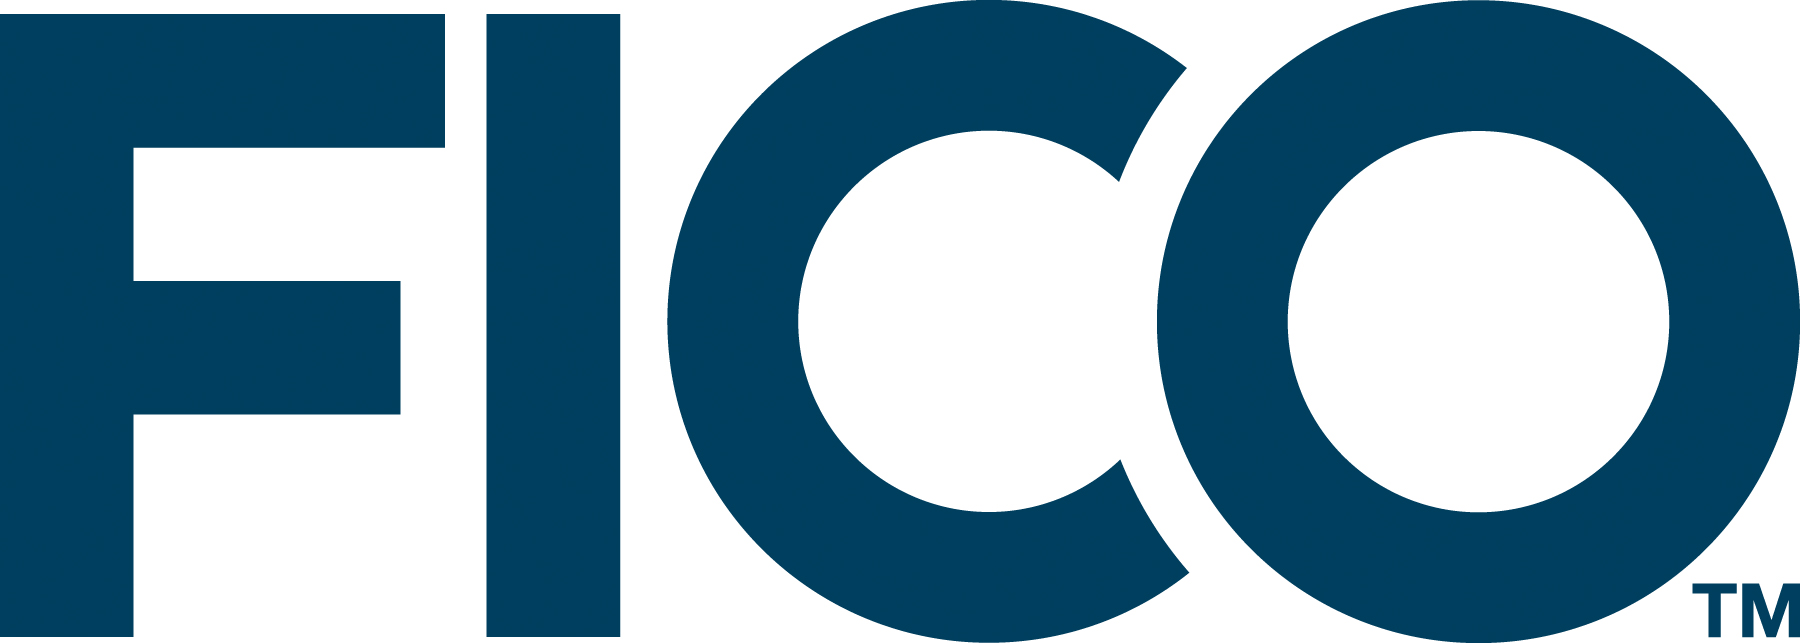 FICO Data Scientists Will Present Analytic Technology Breakthroughs at Edinburgh Scoring Conference